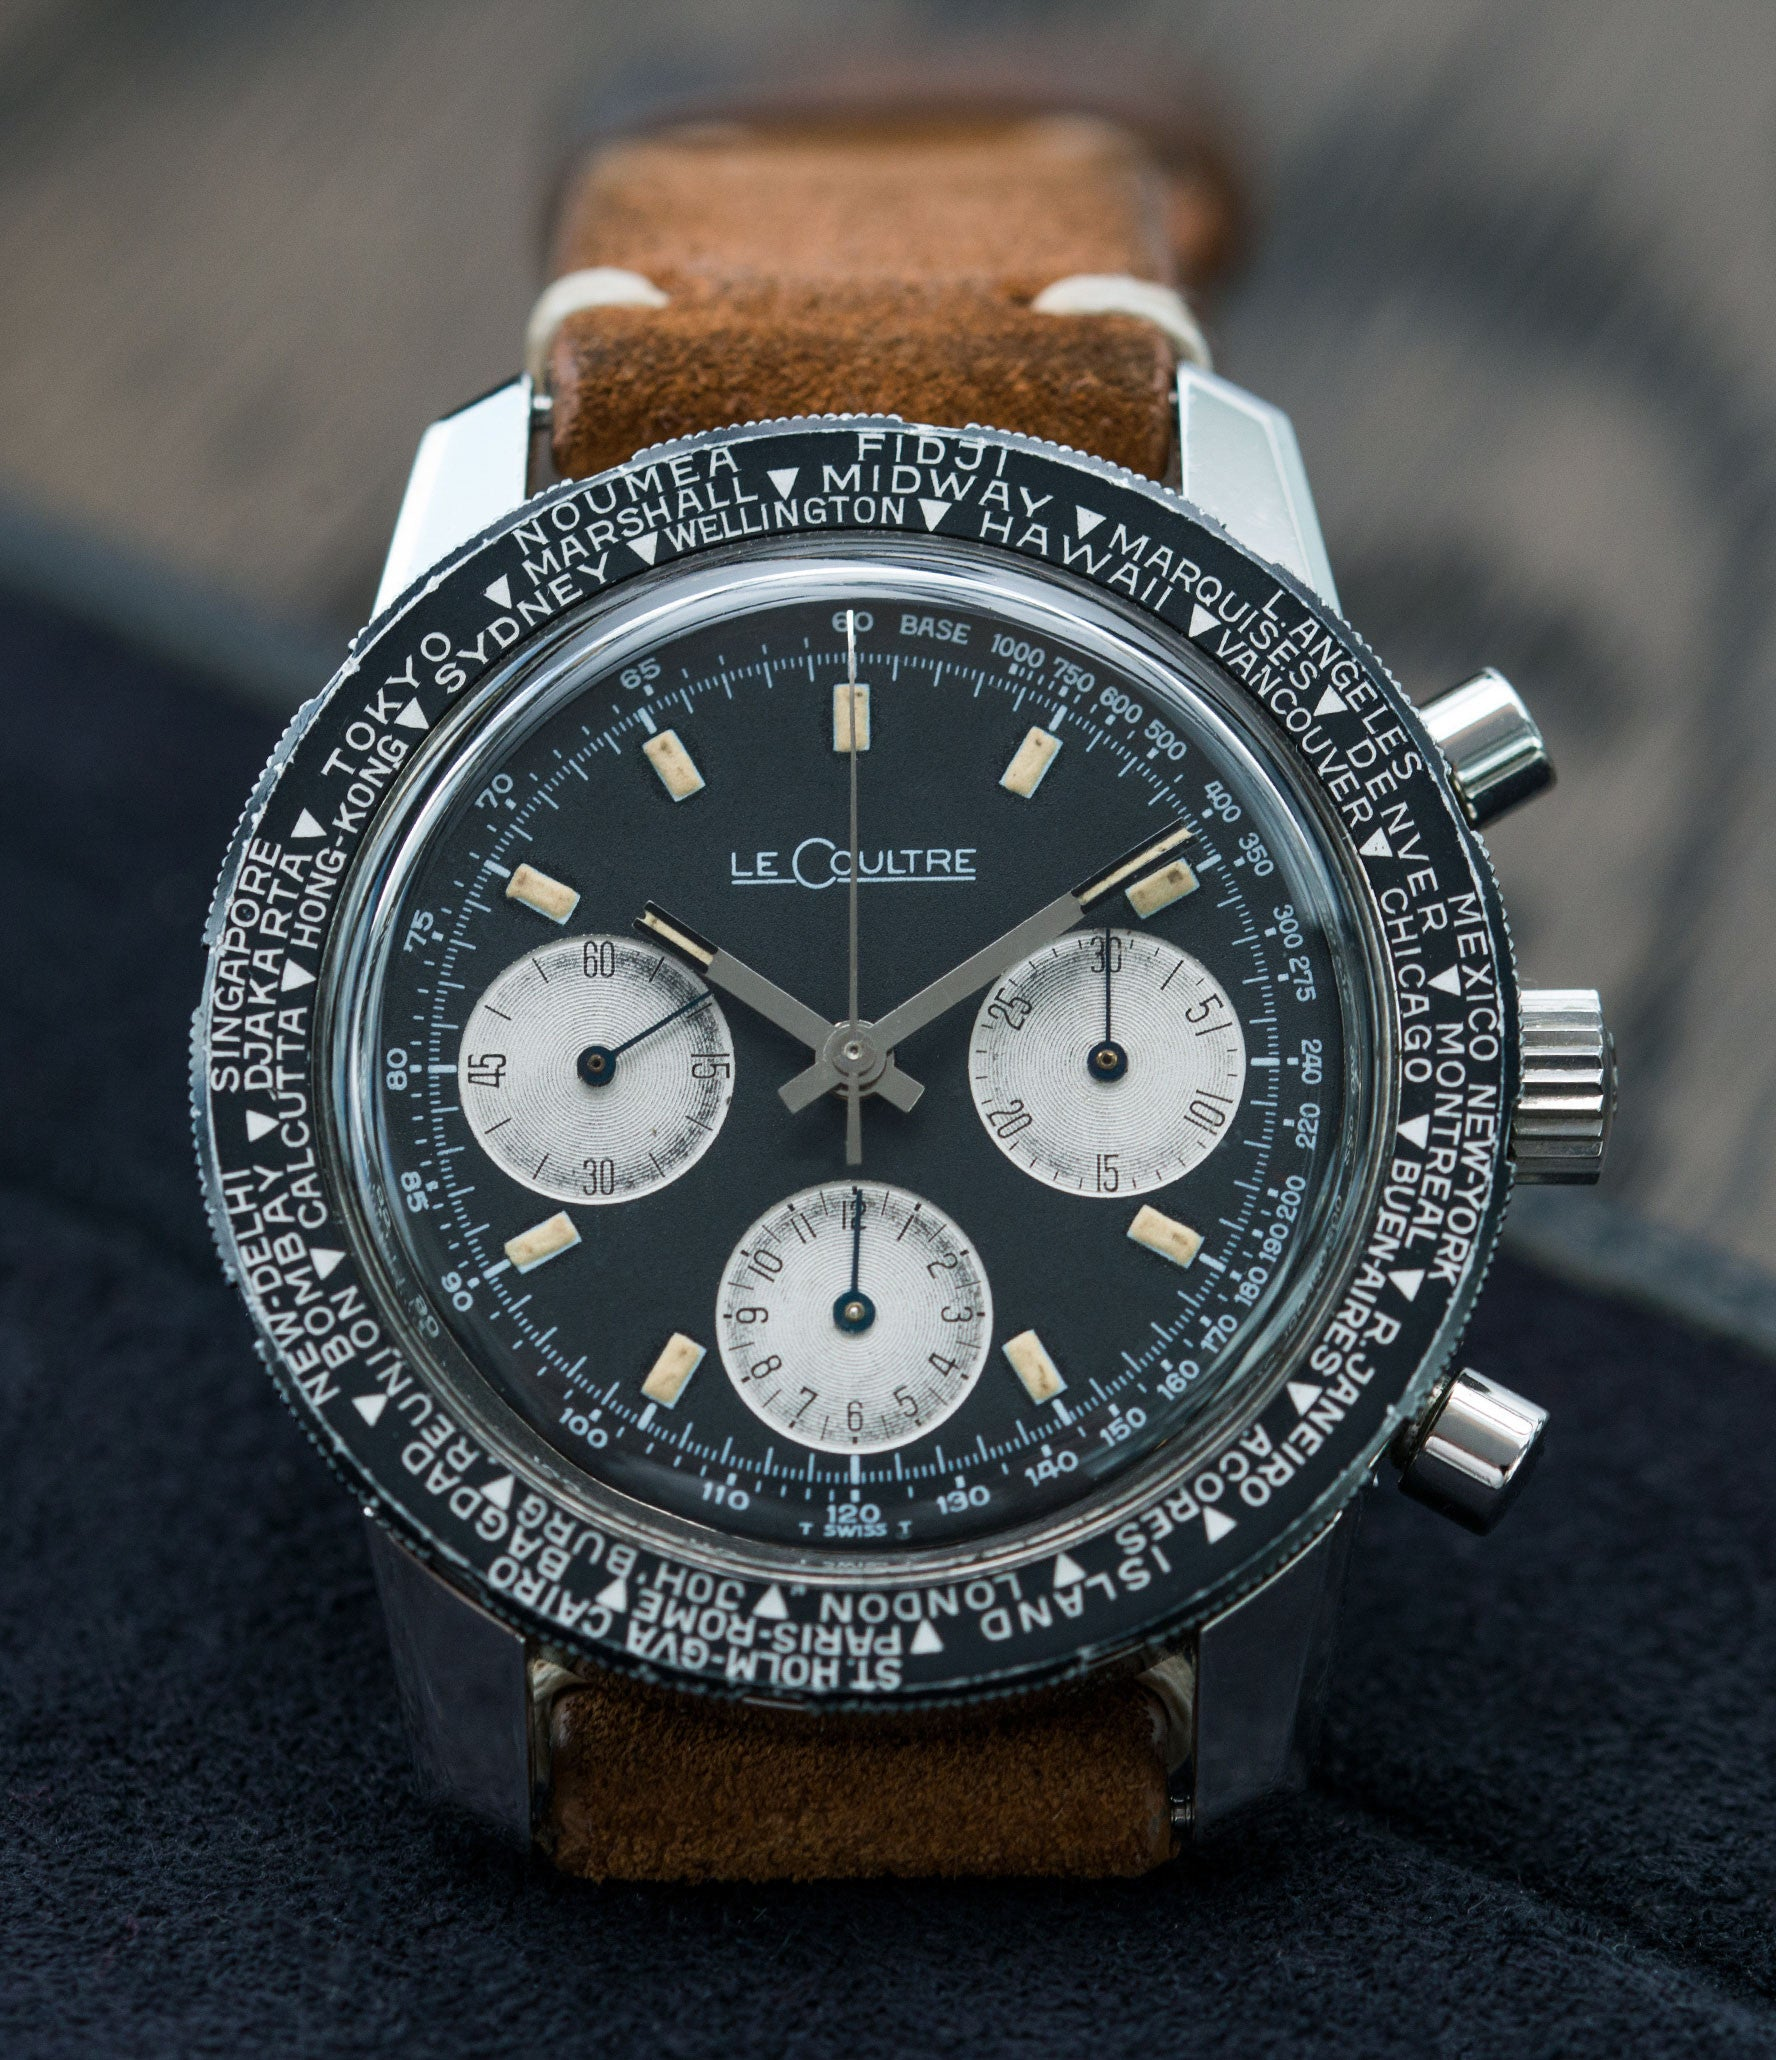 buy vinatage LeCoultre Deep Sea Shark E2643 steel chronograph online at A Collected Man London vintage watch specialist